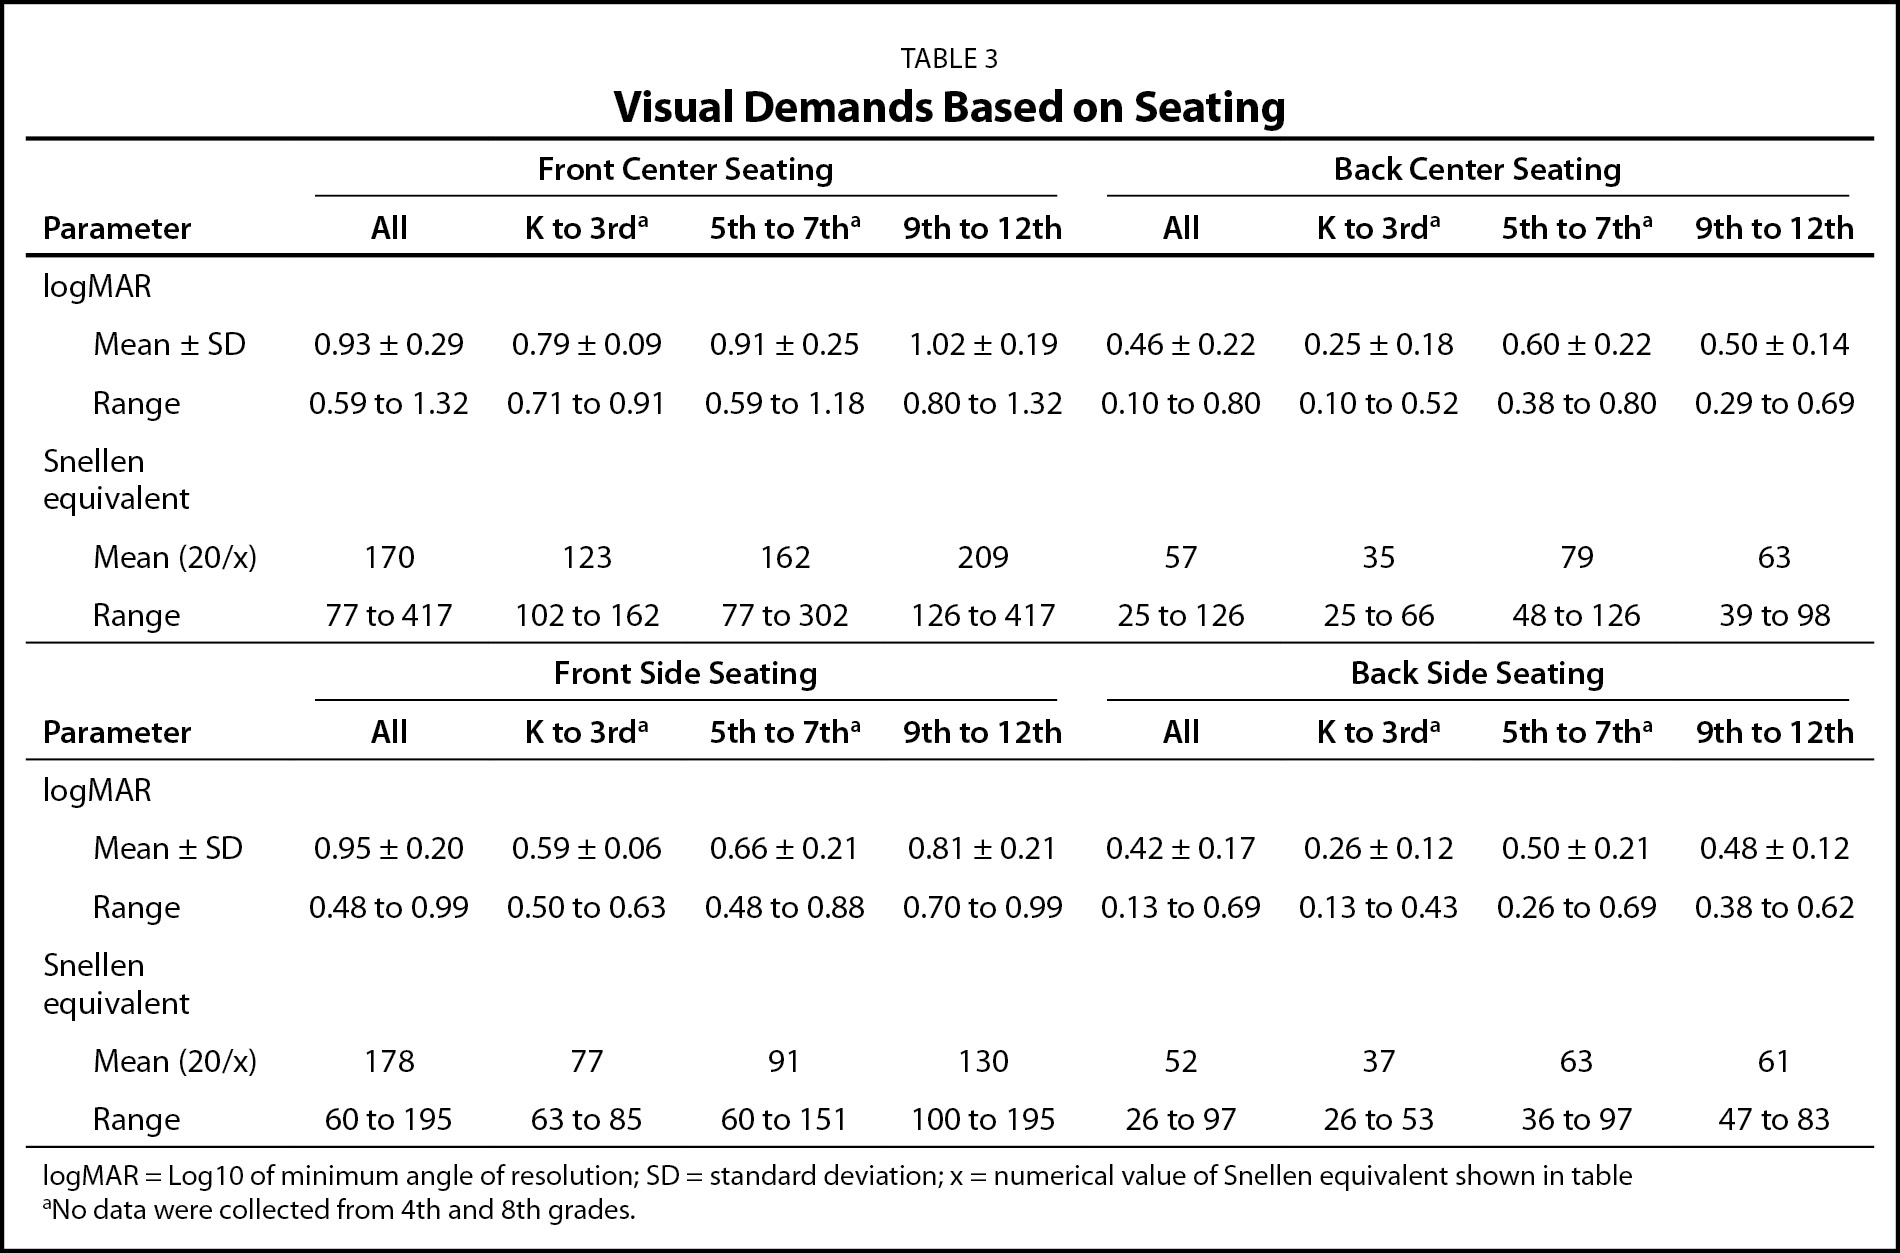 Visual Demands Based on Seating